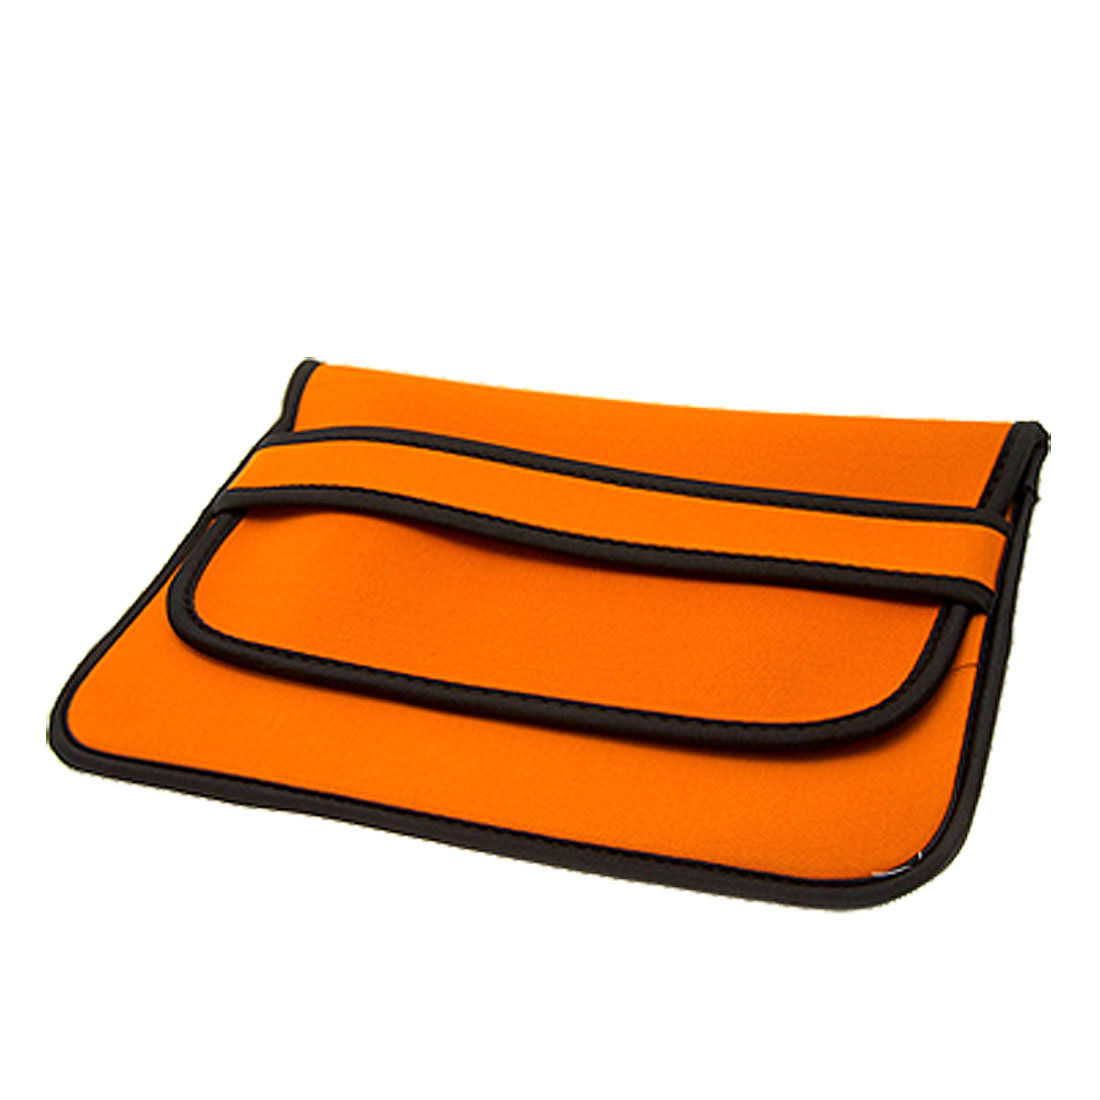 "10"" 10.1"" 10.2"" Orange Black Neoprene Notebook Laptop Sleeve Bag Case"